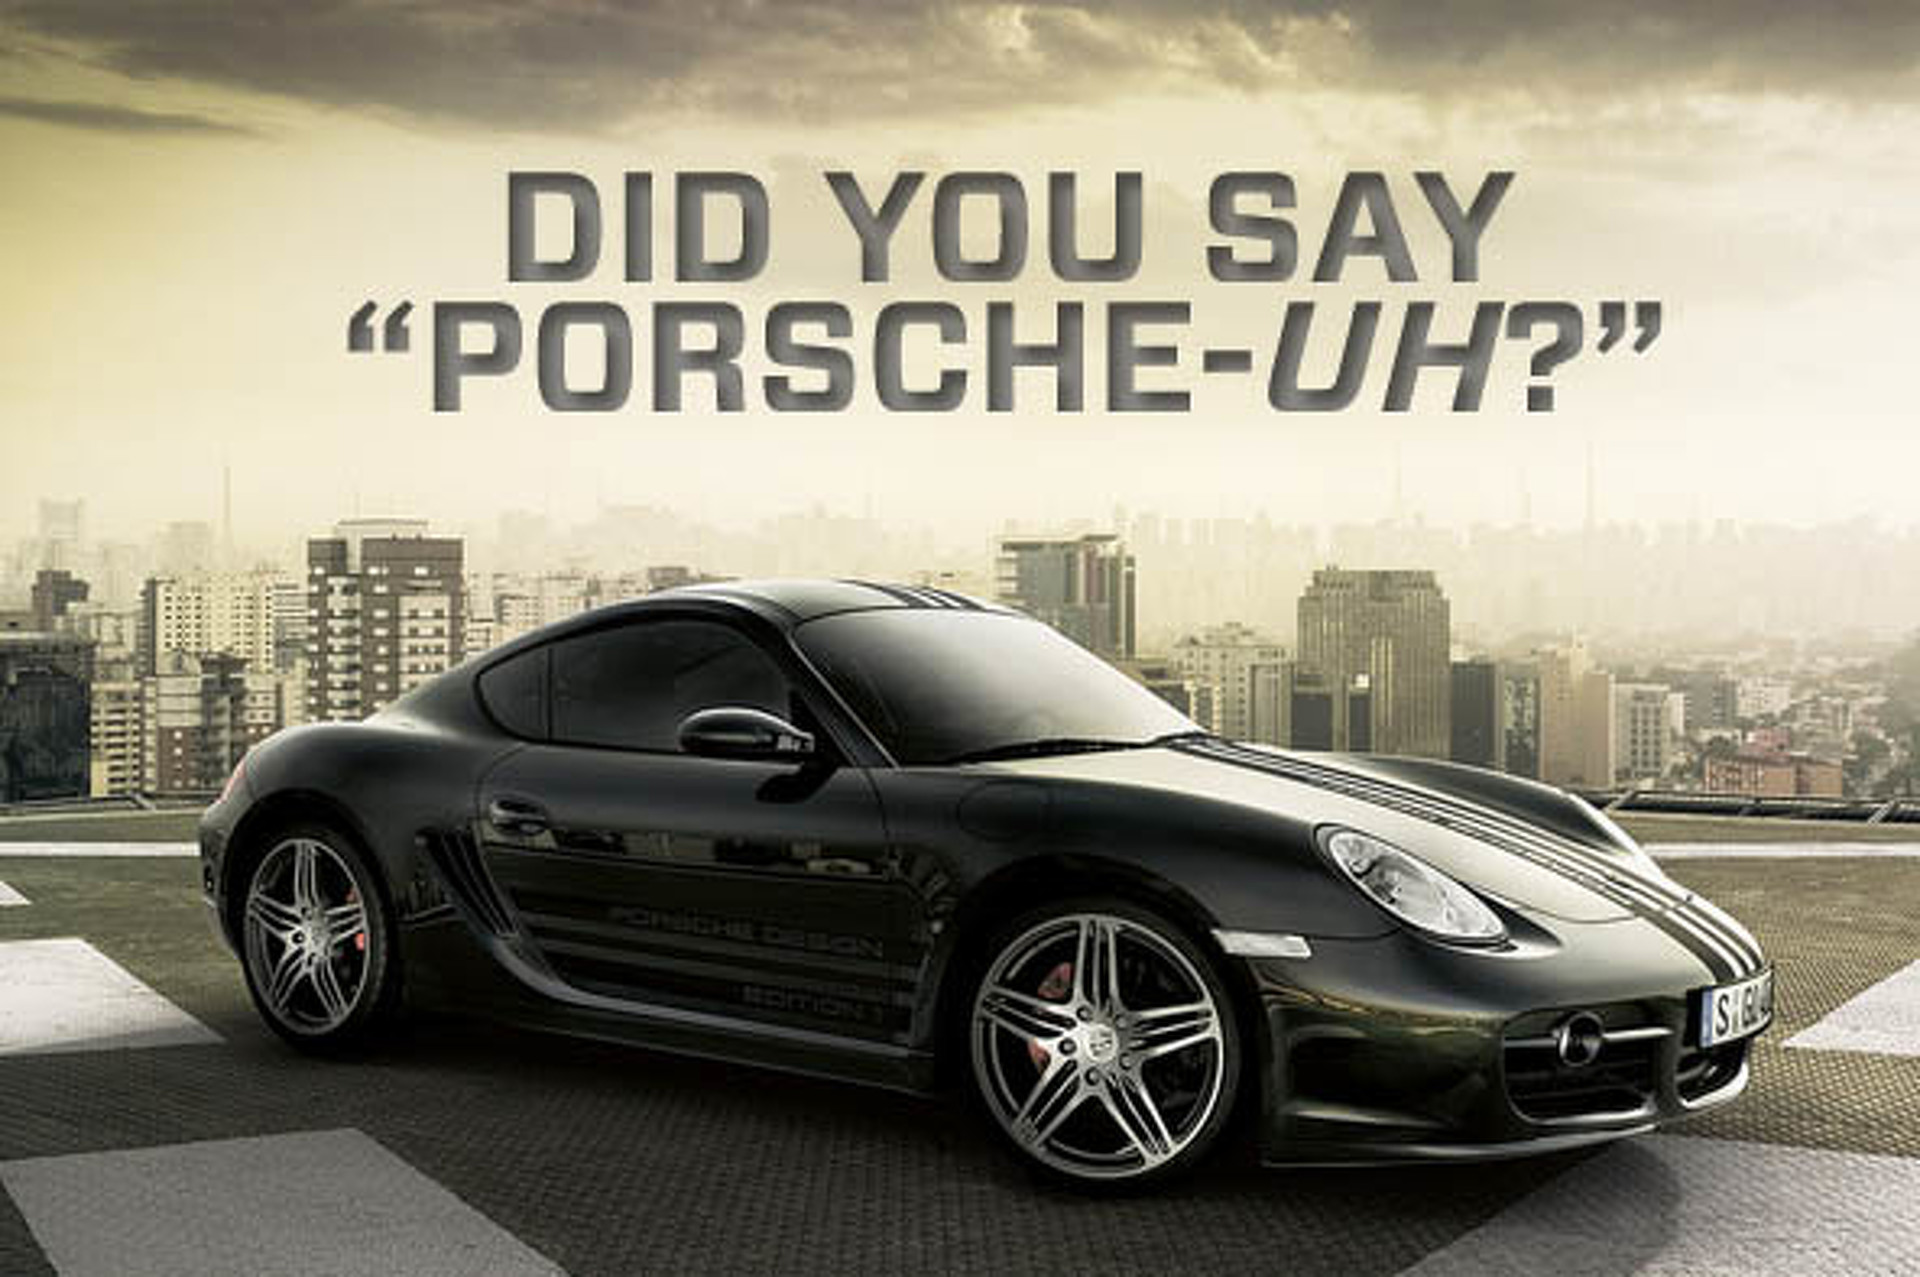 10 Commonly Mispronounced Car Names